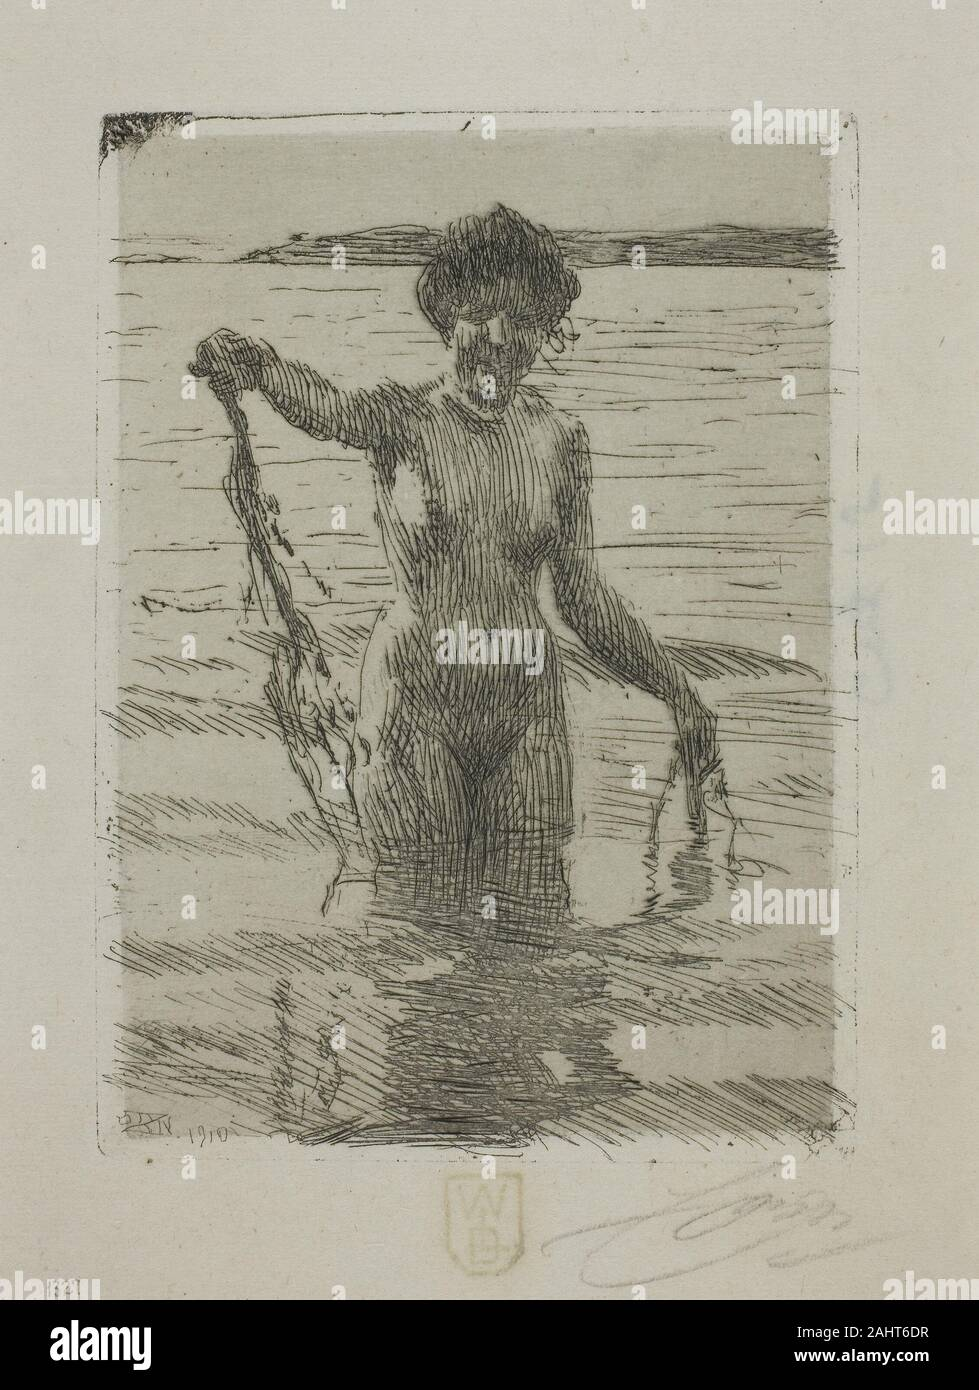 Anders Zorn Seaweed 1910 Sweden Etching On Paper Laid Down On